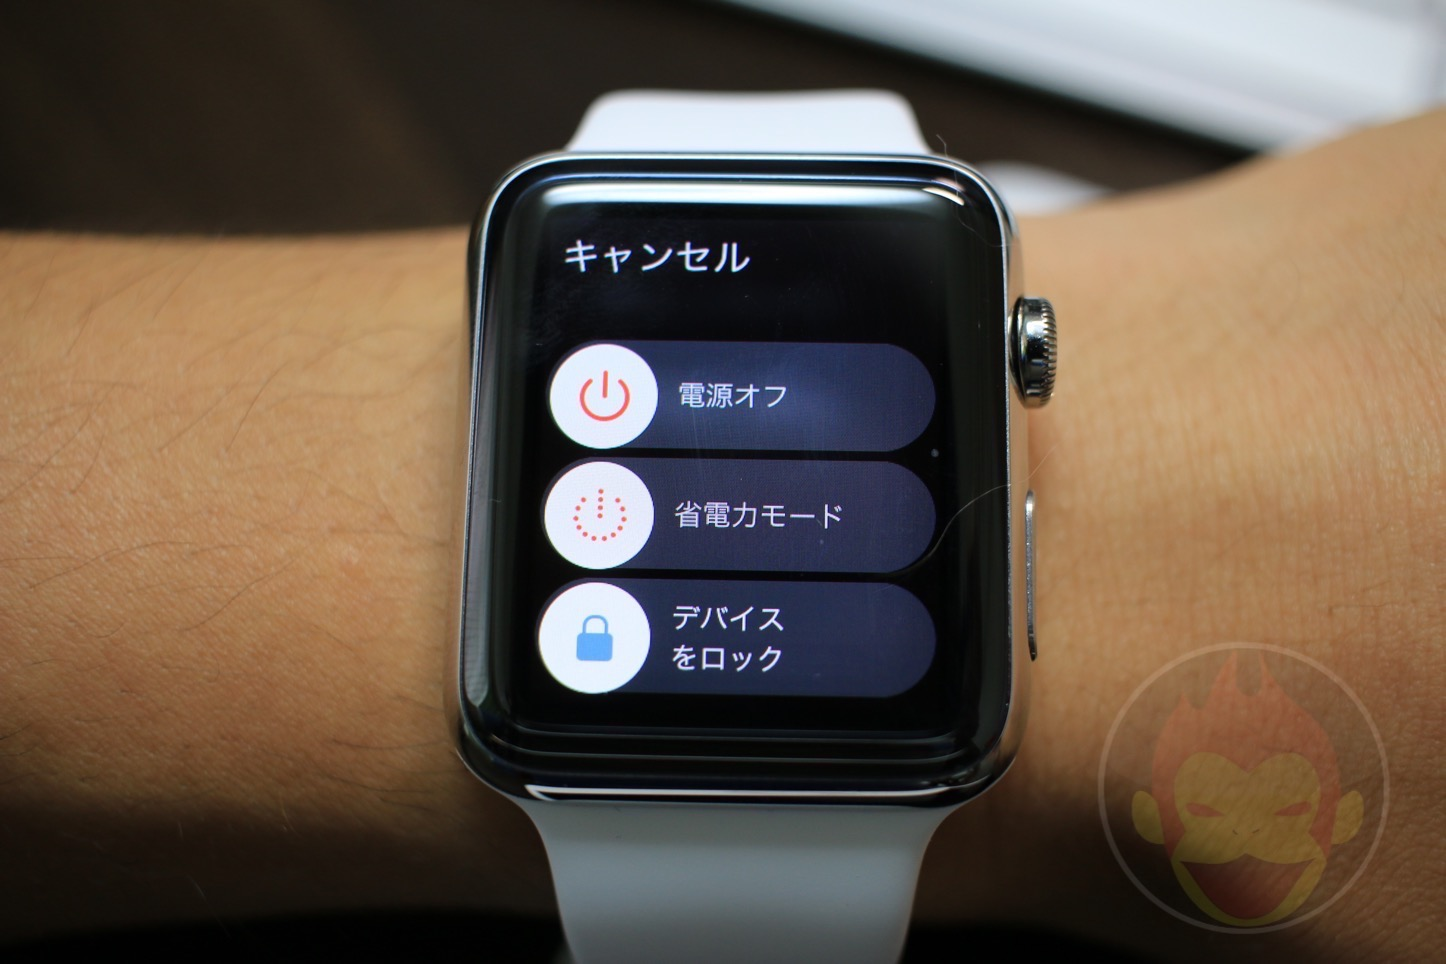 Apple-Watch-Getting-Most-Out-Of-Battery-0025.JPG